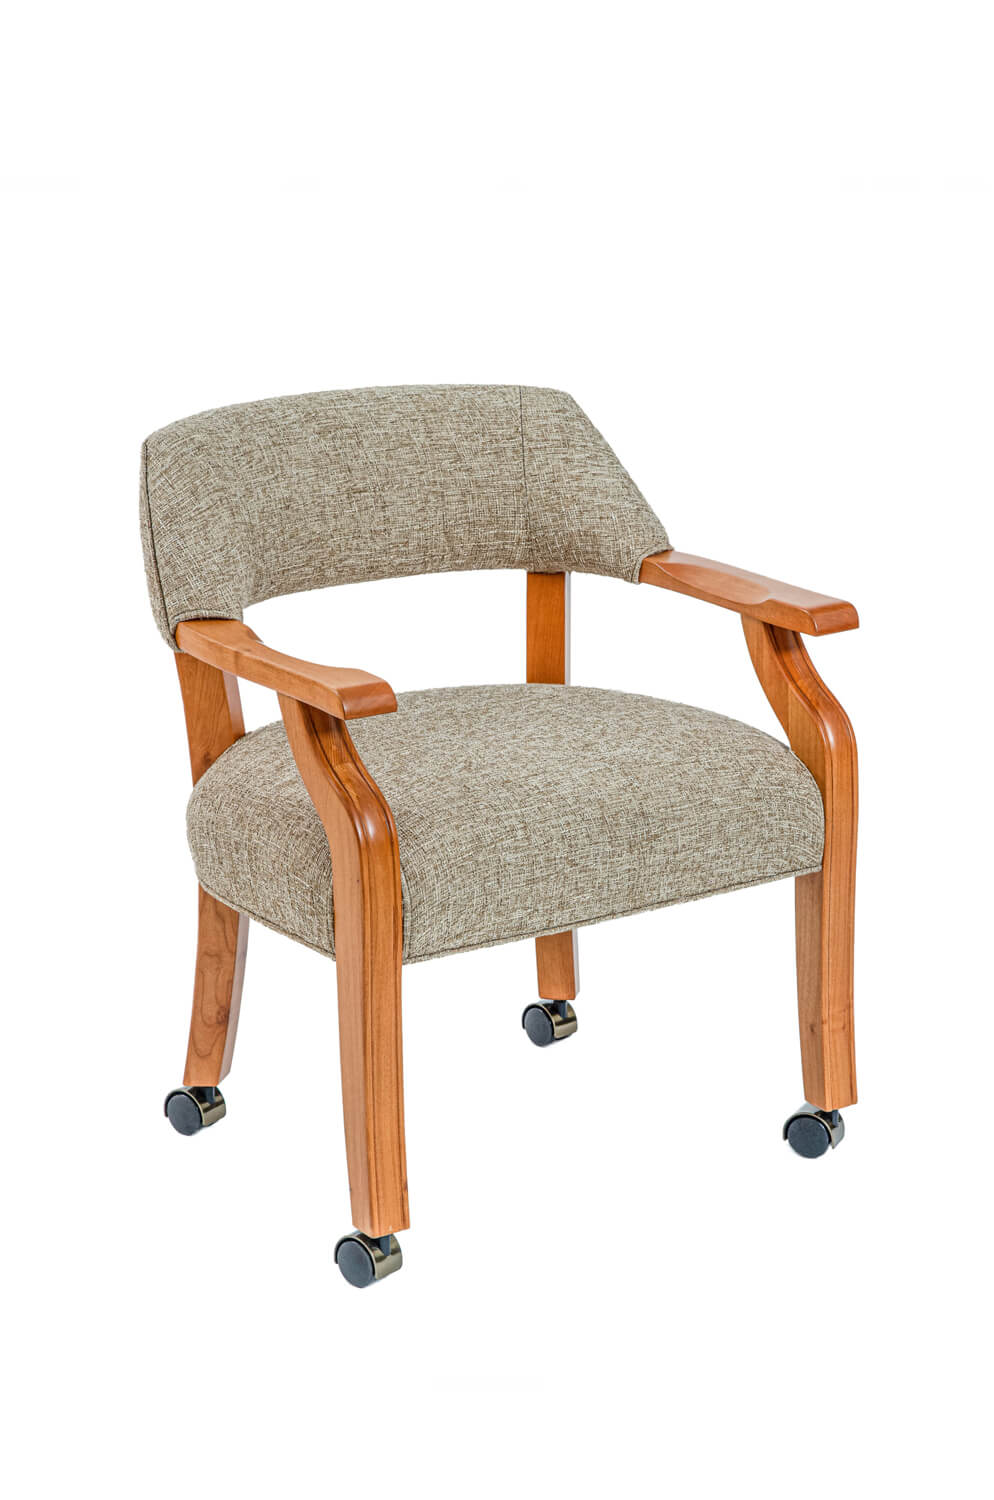 Patriot Maple Club Arm Chair with Casters